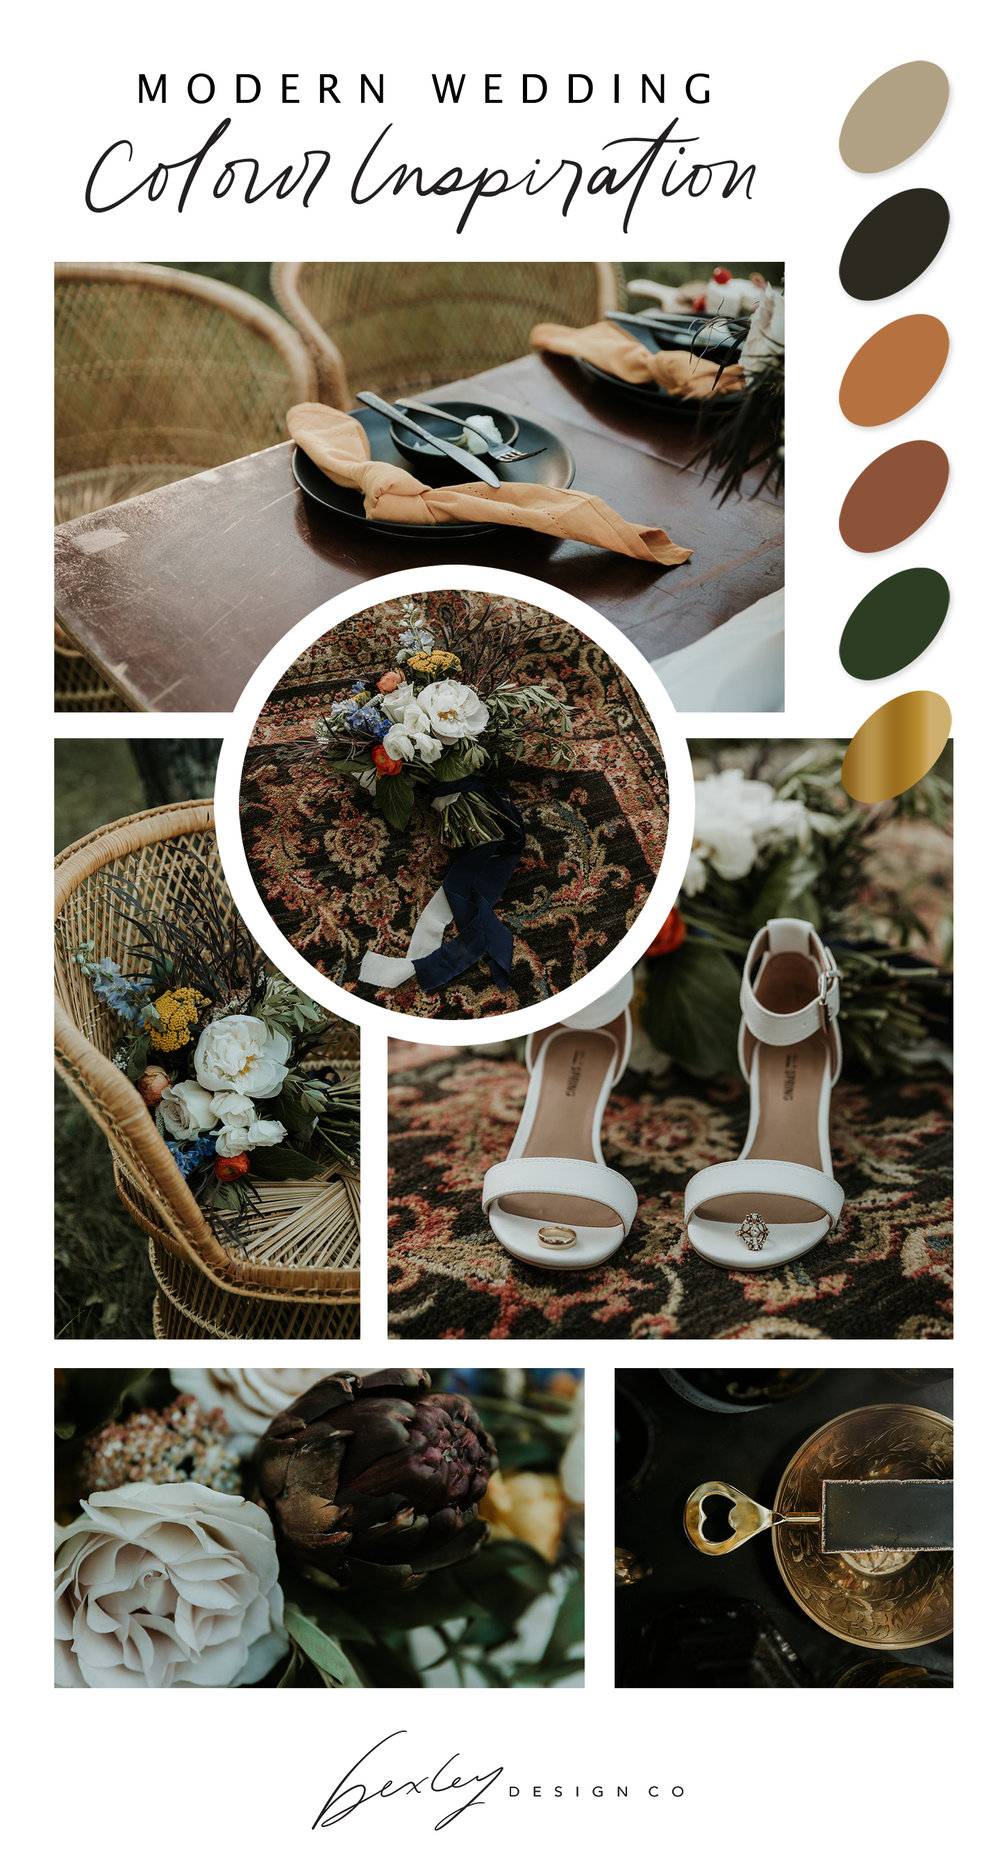 weddinginspiration-moodboard-bexley-101.jpgModern Wedding Colour Inspiration // Bexley Design Co